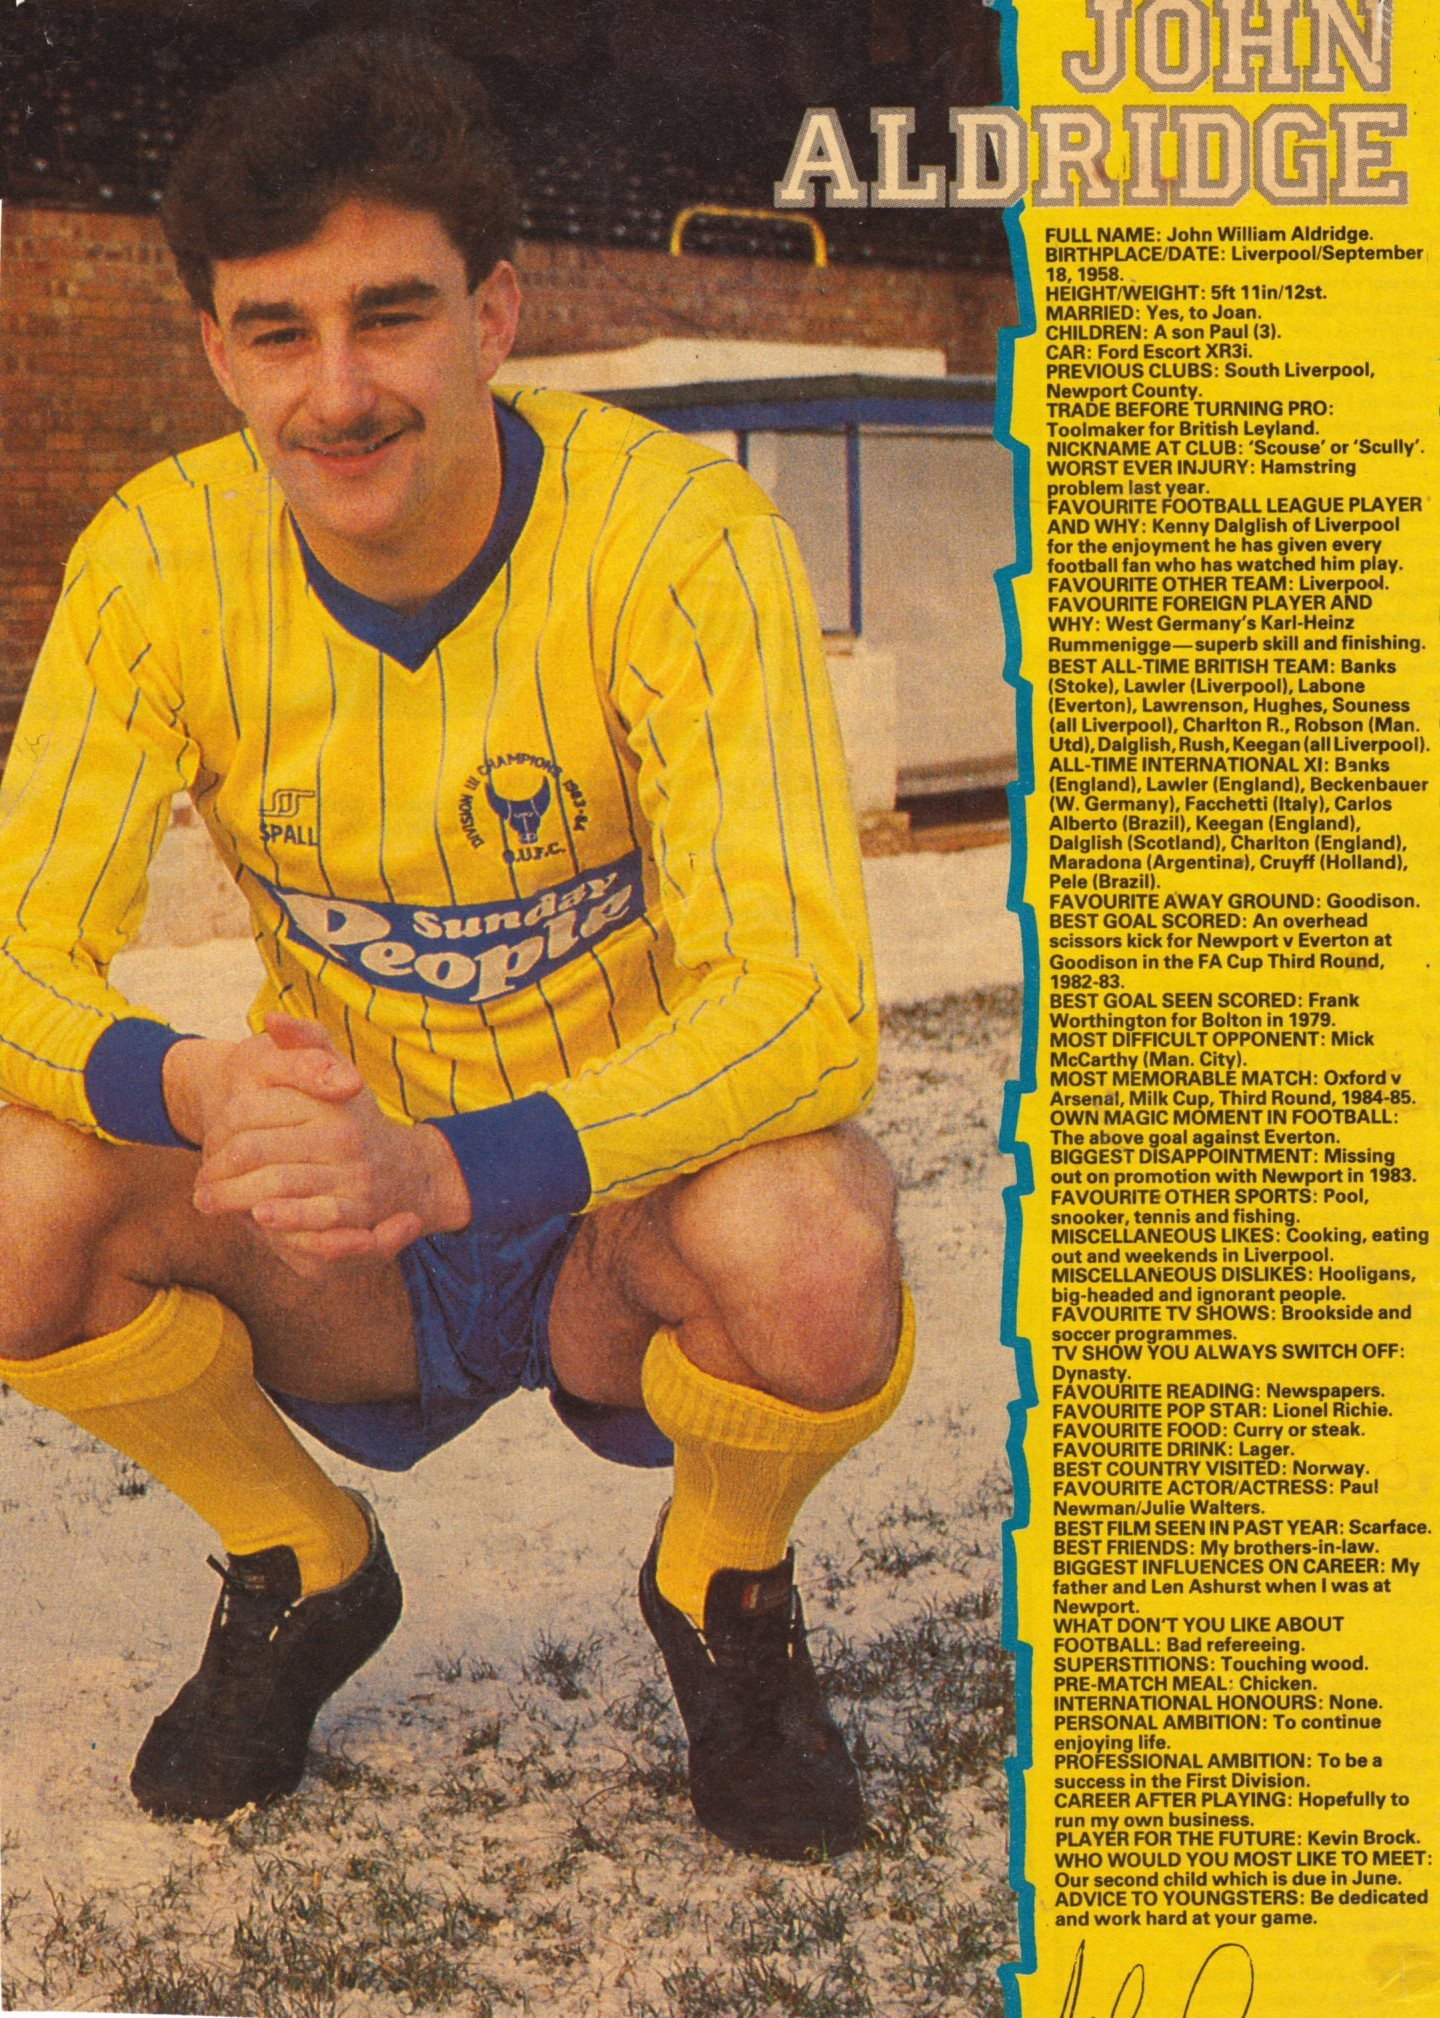 Shoot! Focus on John Aldridge at Oxford